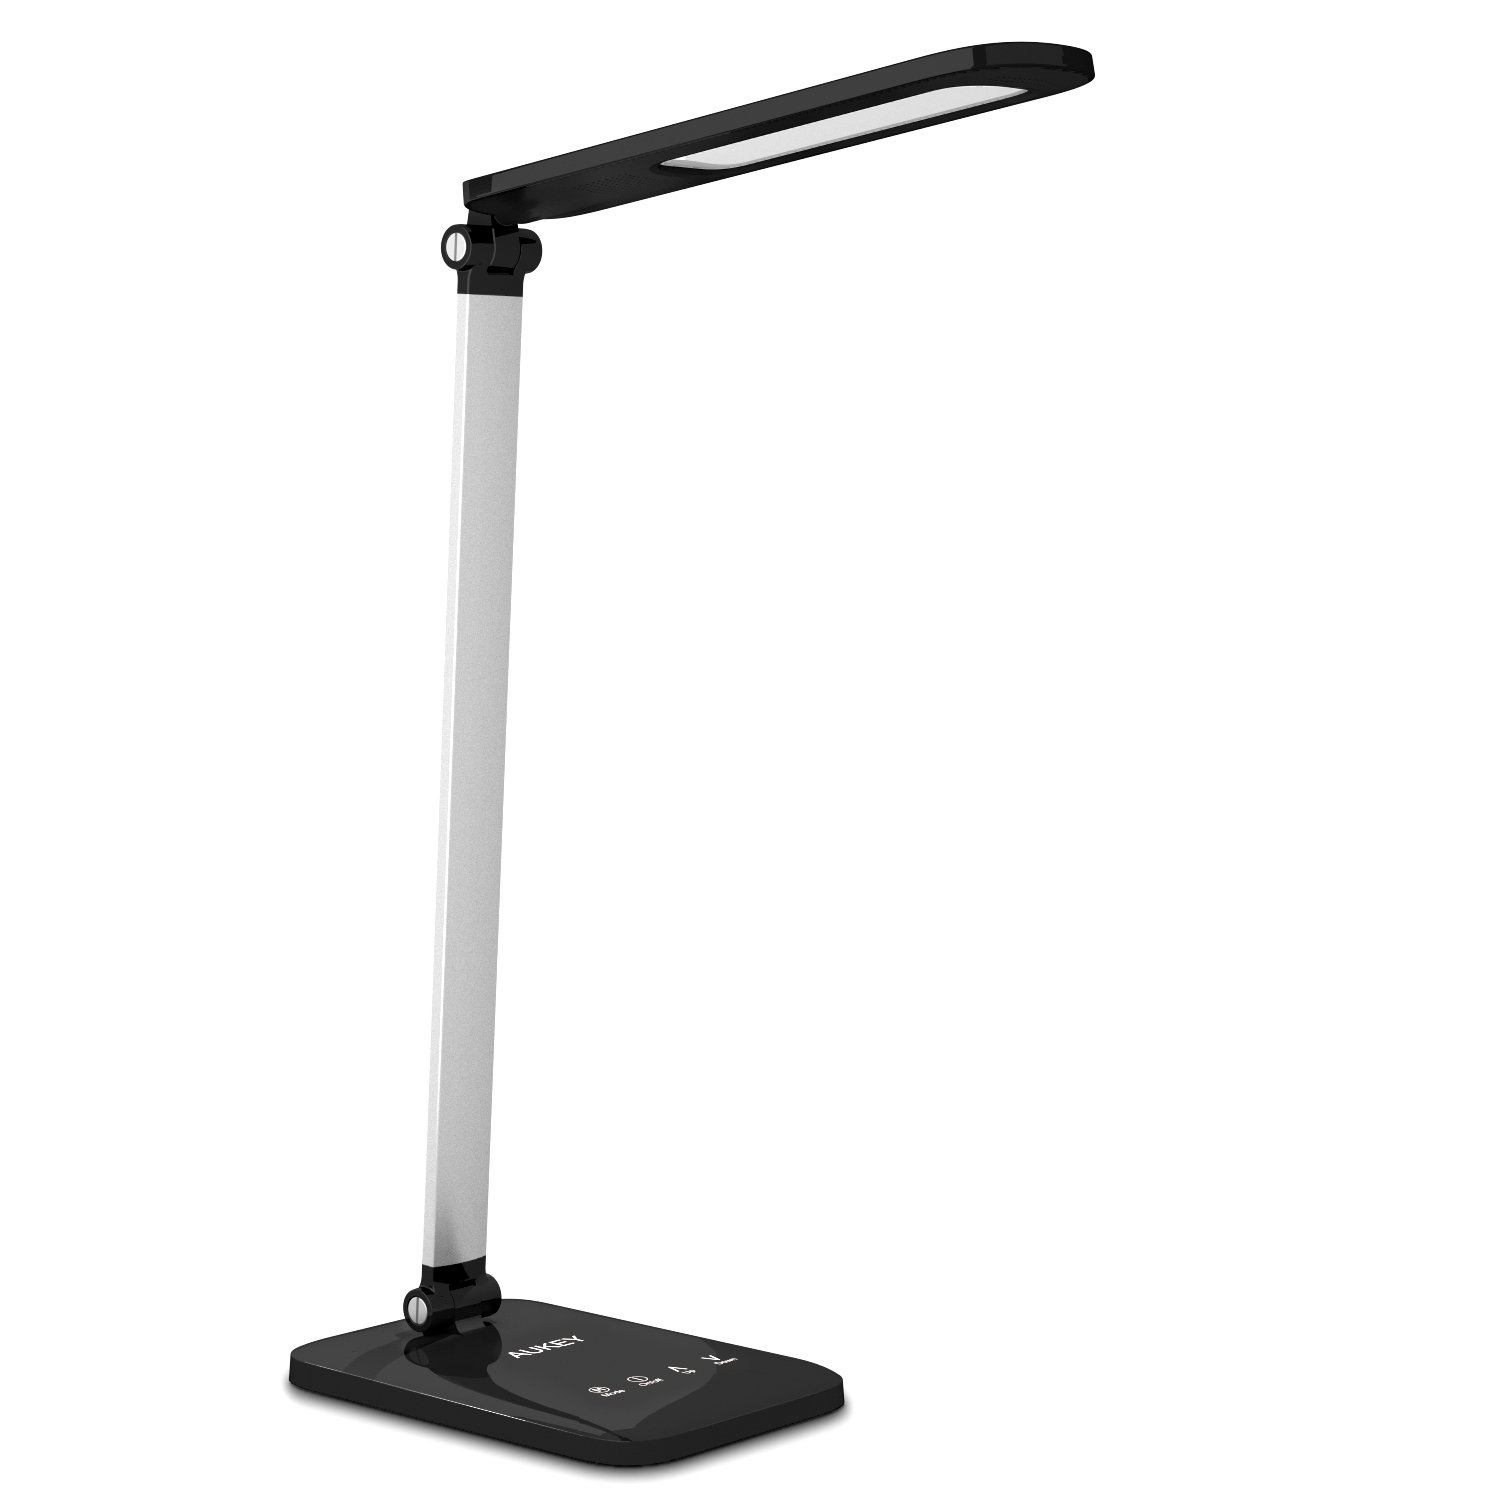 funky amish sectional clip bar desk lamp z koncept amazon light on bronze minimalist full gooseneck soon lights headboard lighting lamps of small cole size parts led franconiaski equo coming large standing task floor reading